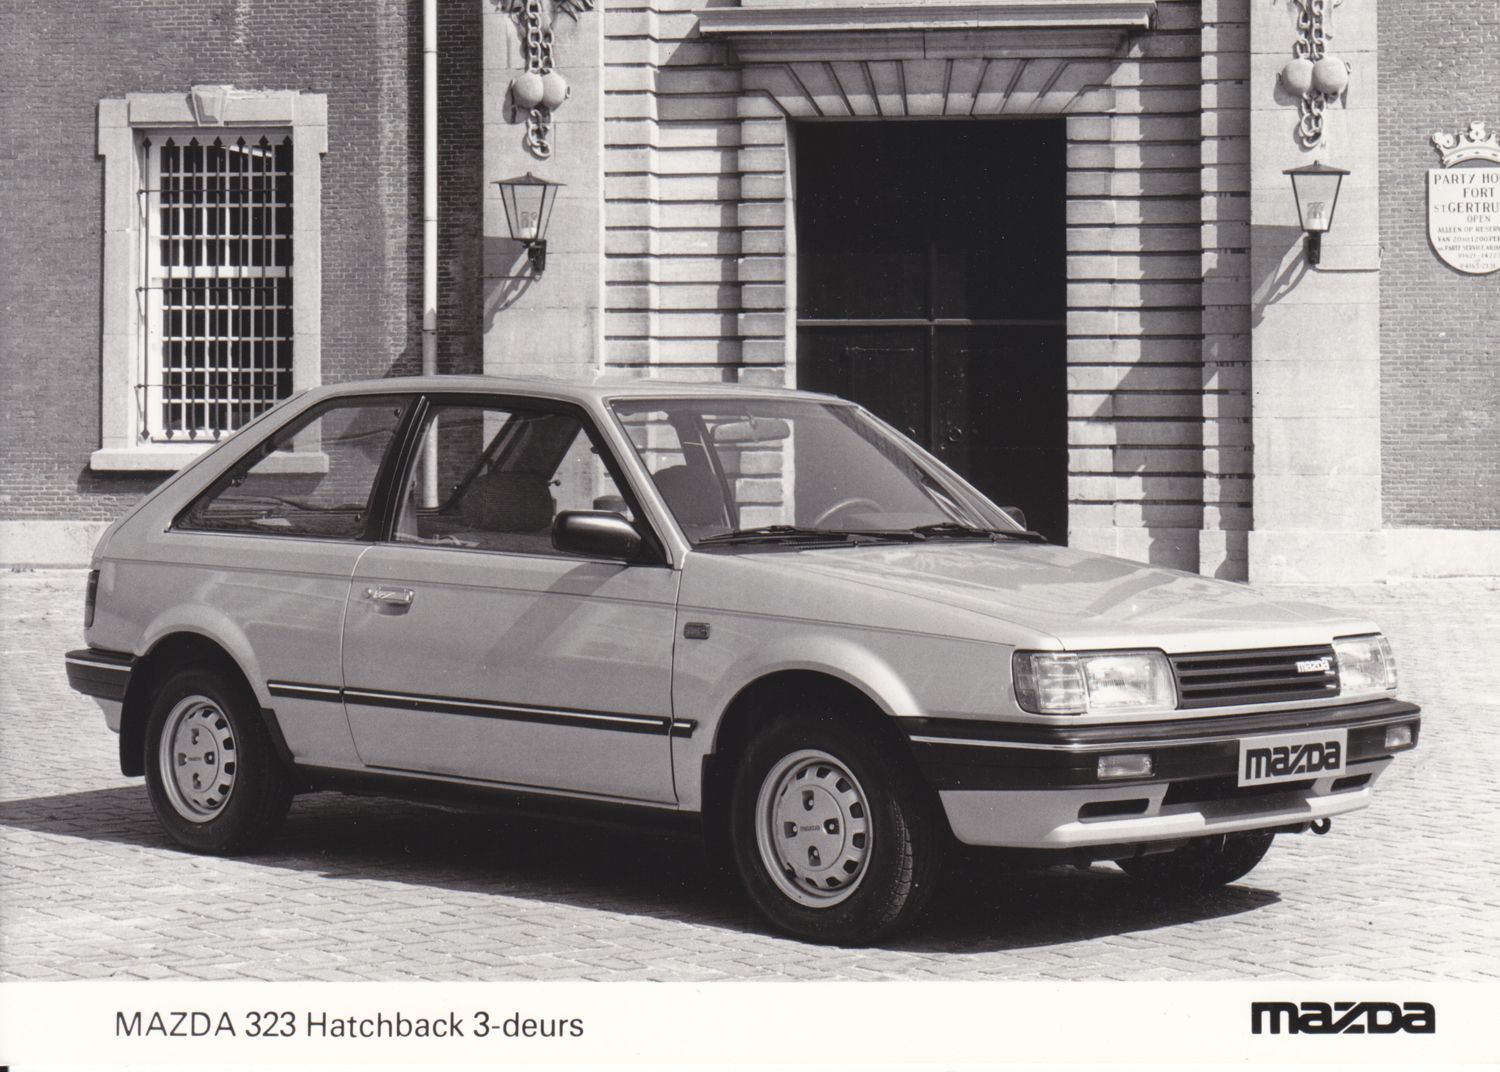 Mazda 323 Hatchback 3-Door (NL, August 1985)